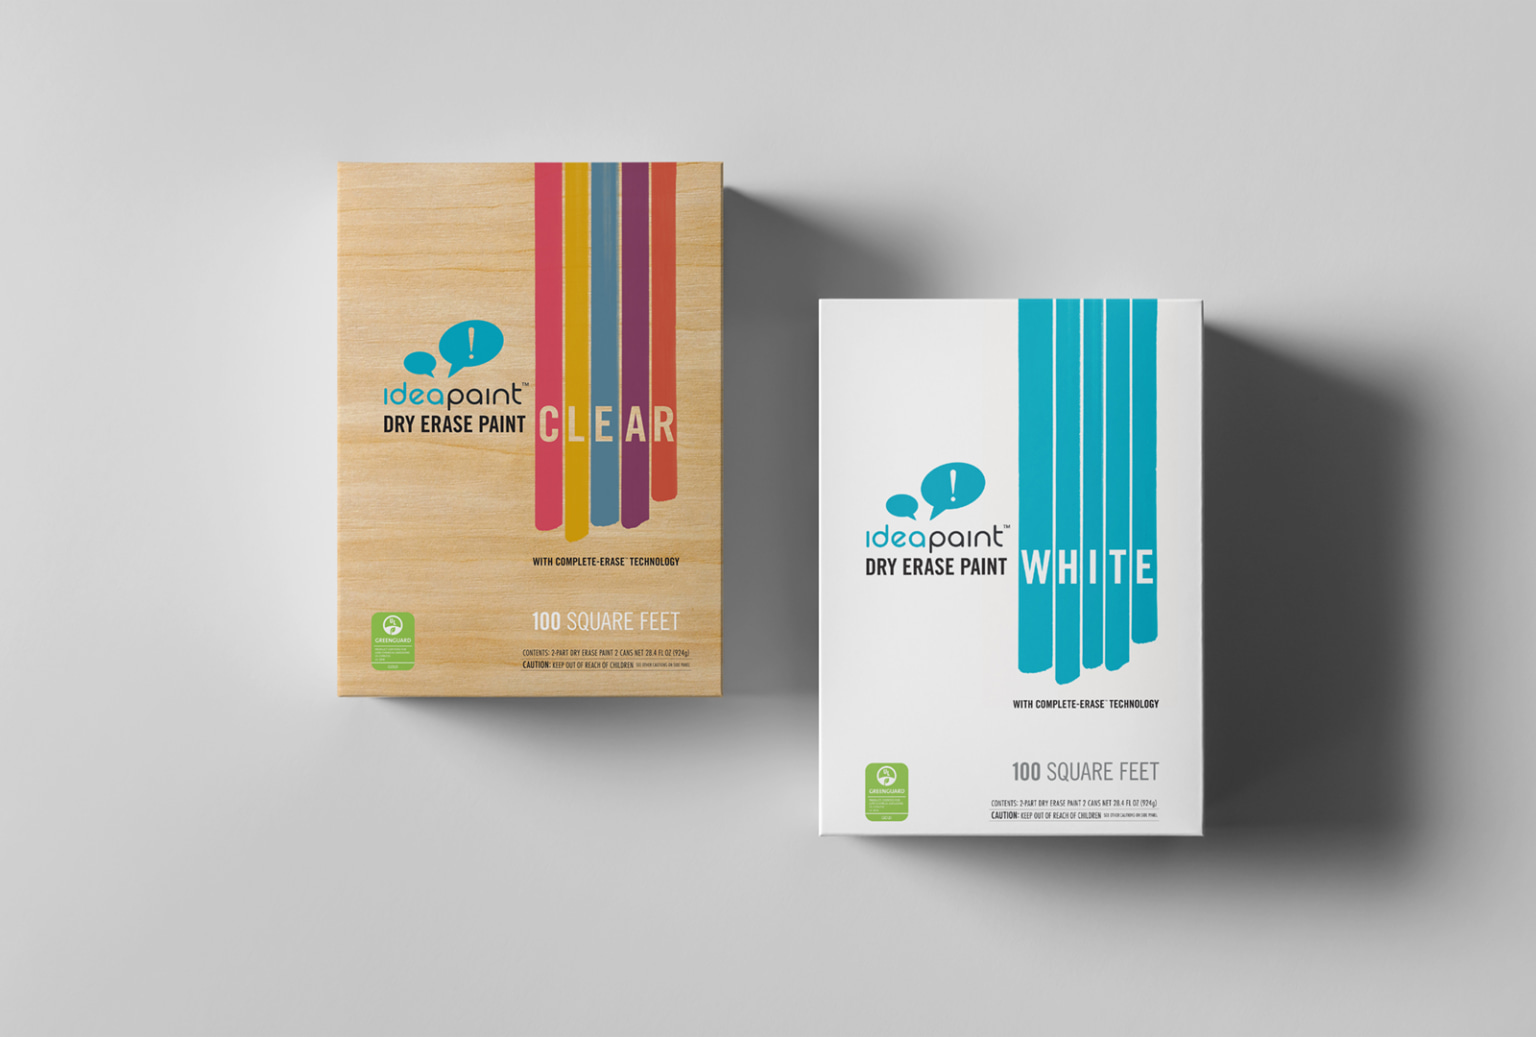 Ideapaint Packaging